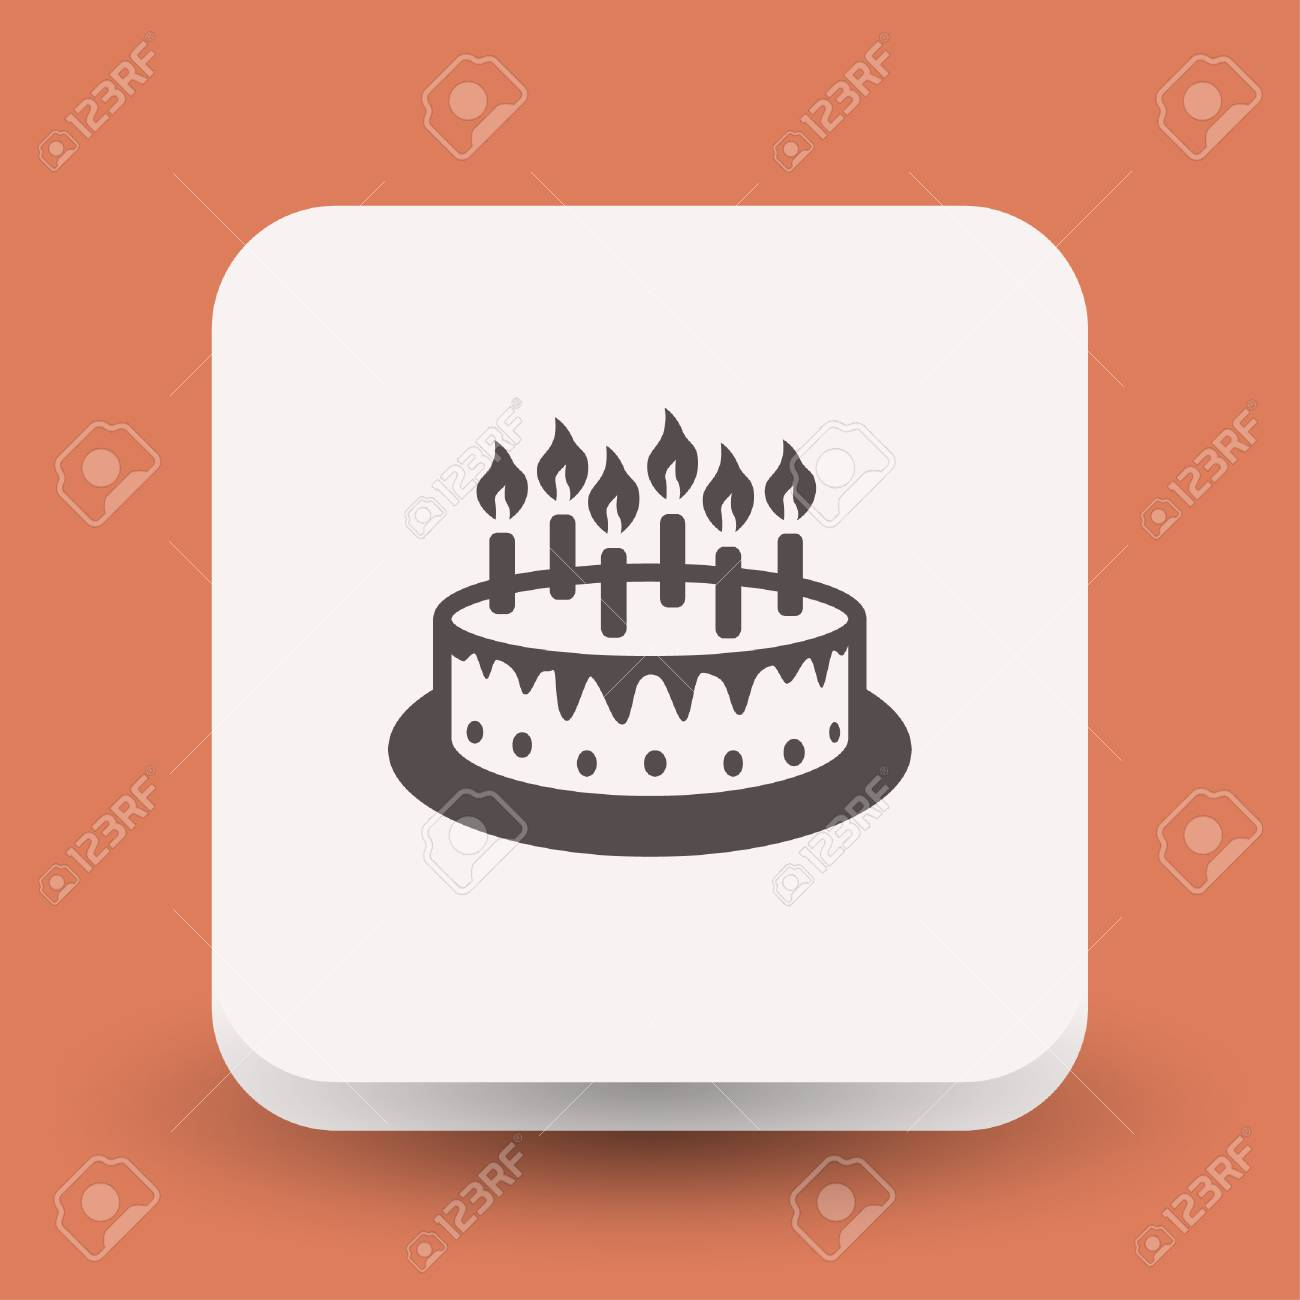 Pictograph Of Cake Vector Concept Illustration For Design Eps